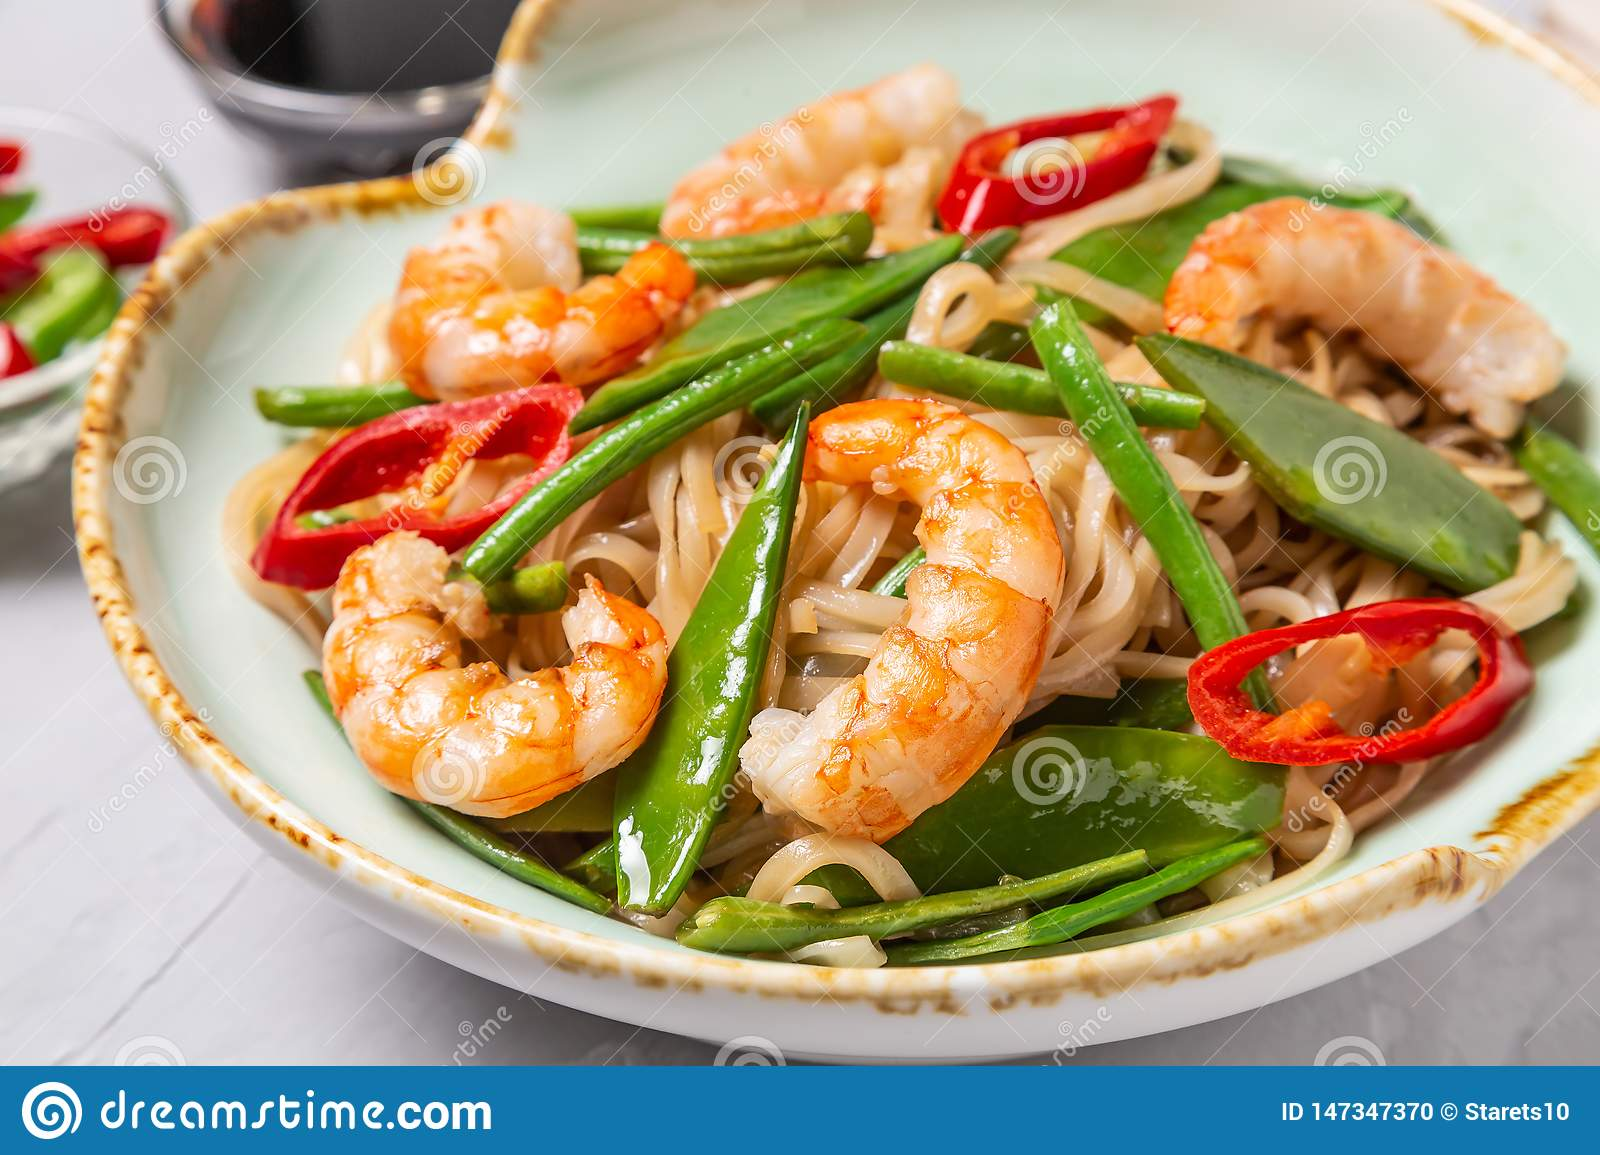 Asian dish of fried rice noodles with shrimp and vegetables